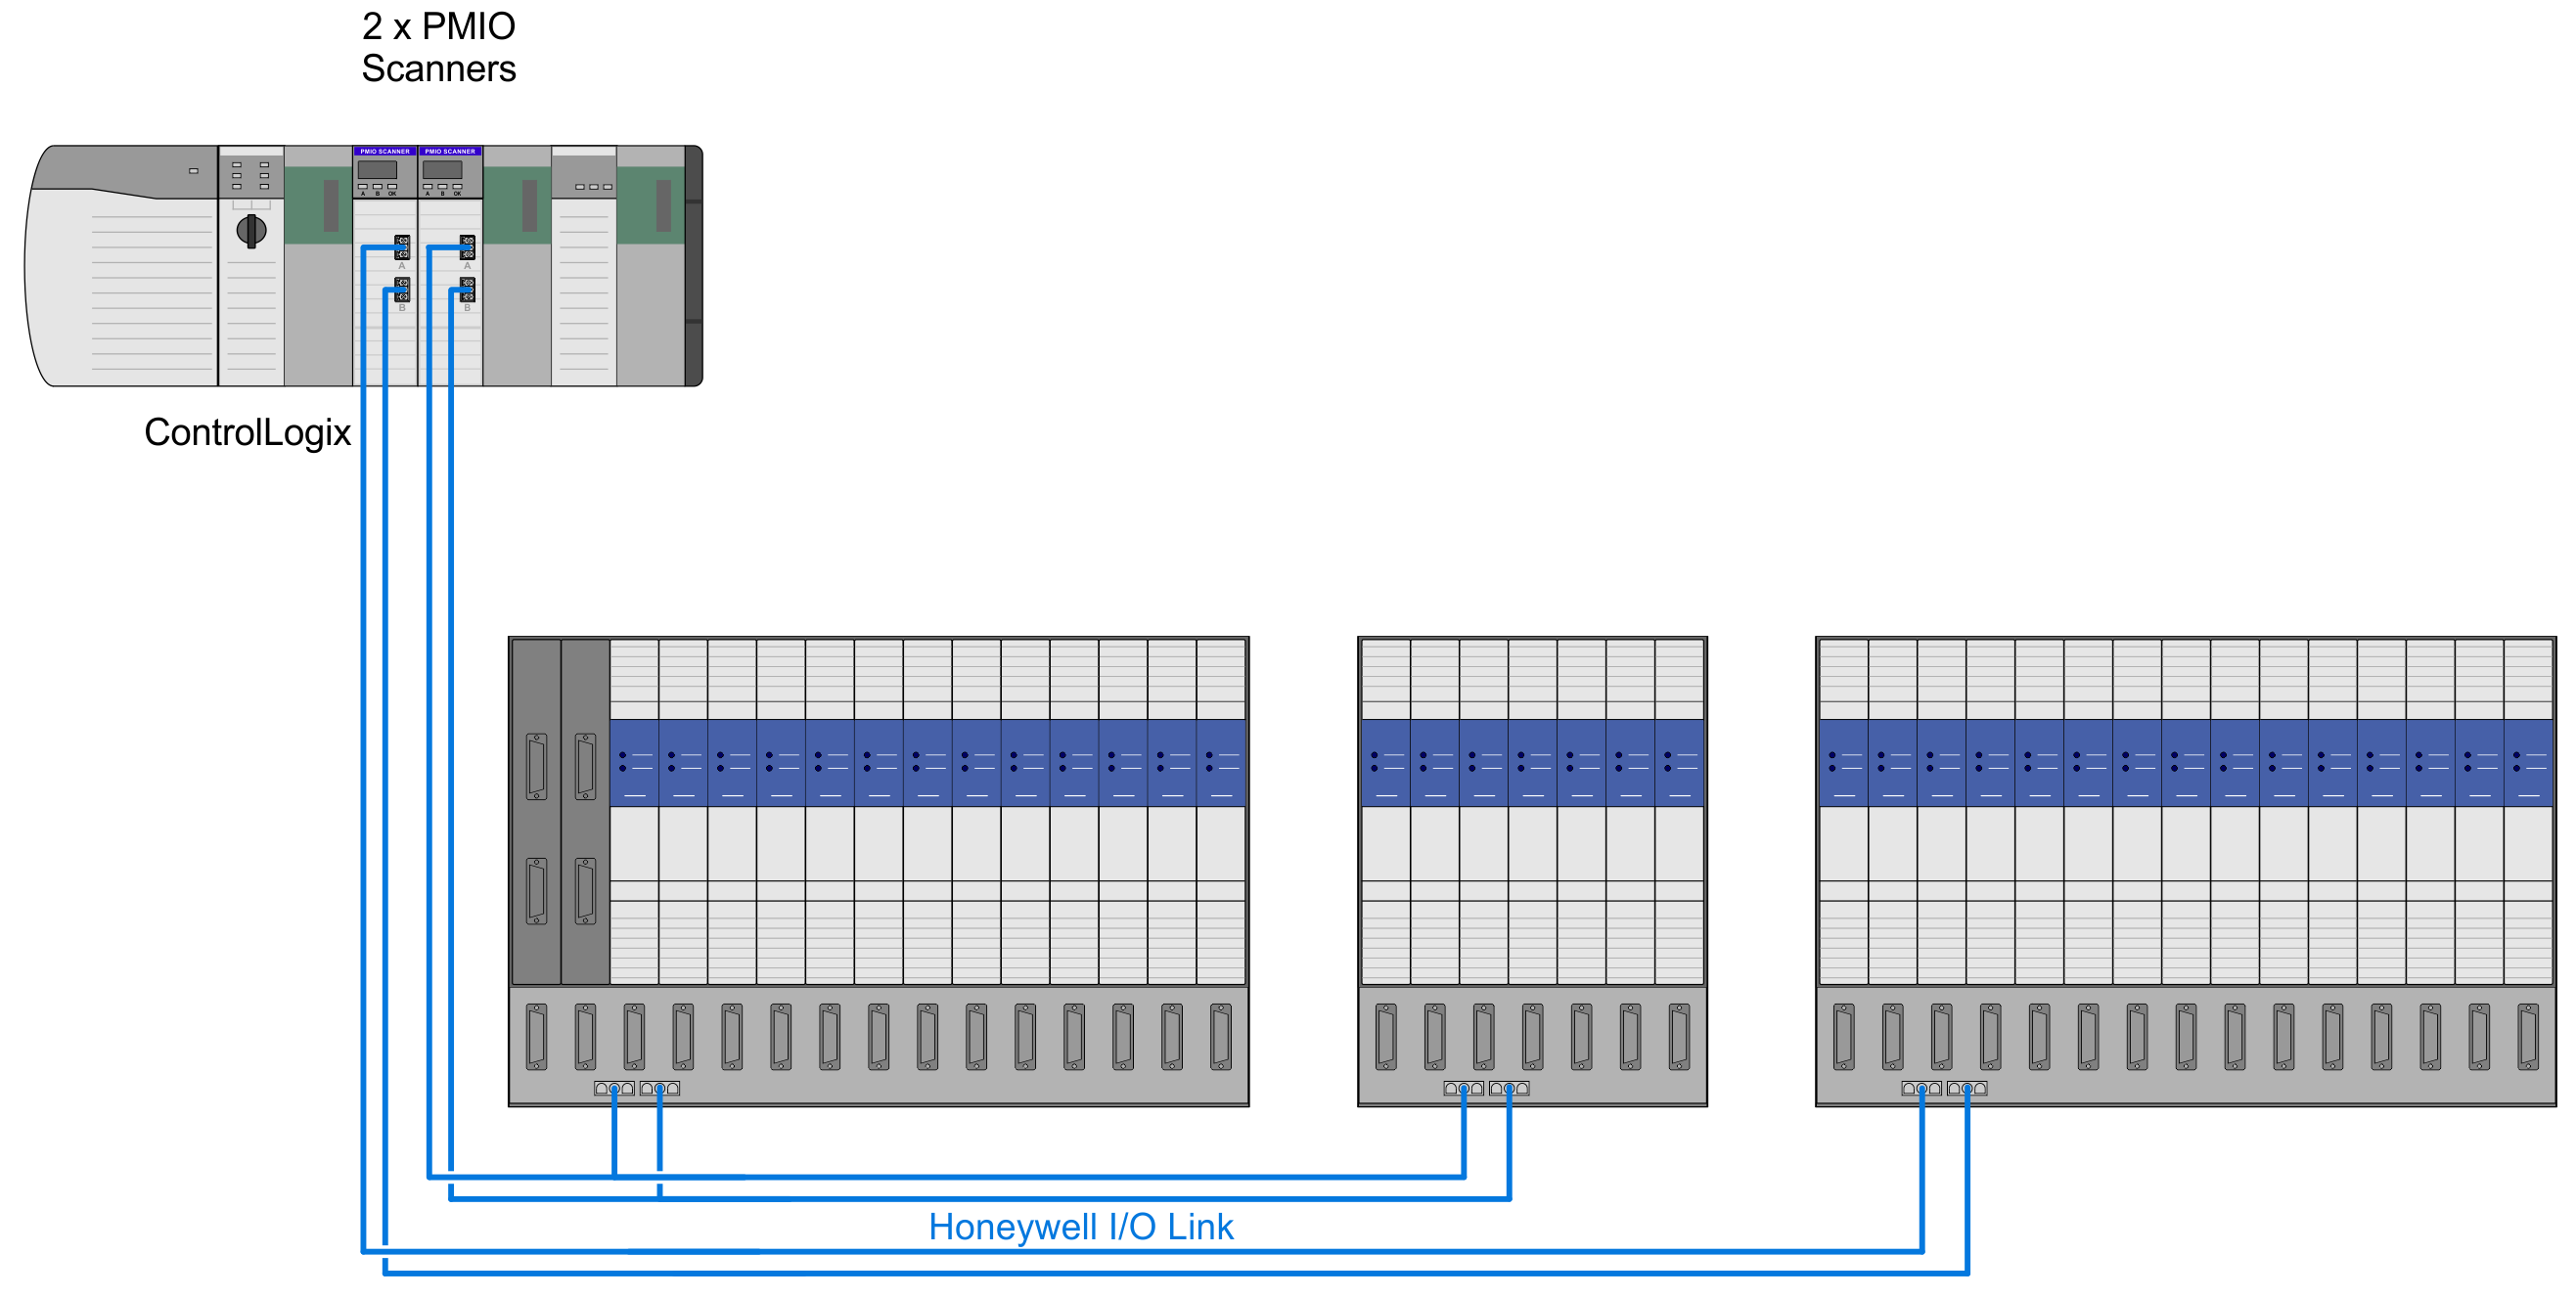 Honeywell TDC 3000 PMIO I/O Link Migration architecture. Four chassis implementation. A second PMIO can be added, if more than 28 IOPs are migrated.